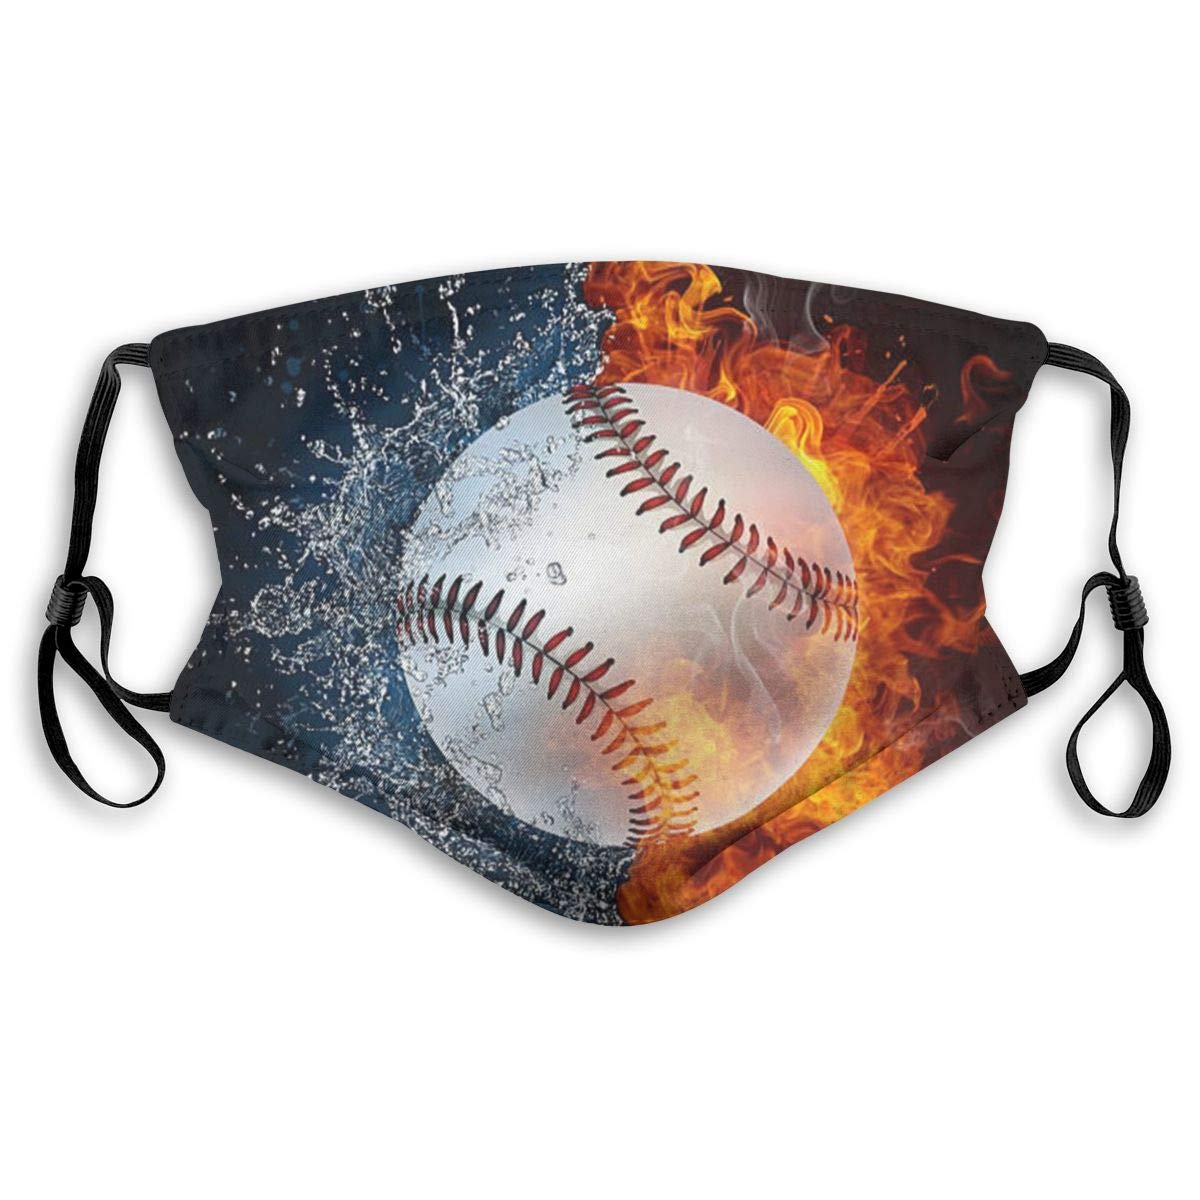 Mouth Mask With Filter Fire Water Baseball Ball Printed Dust Face Mask For Dust Mouth Mask Anti-Dust Mask For Kids Women And Men